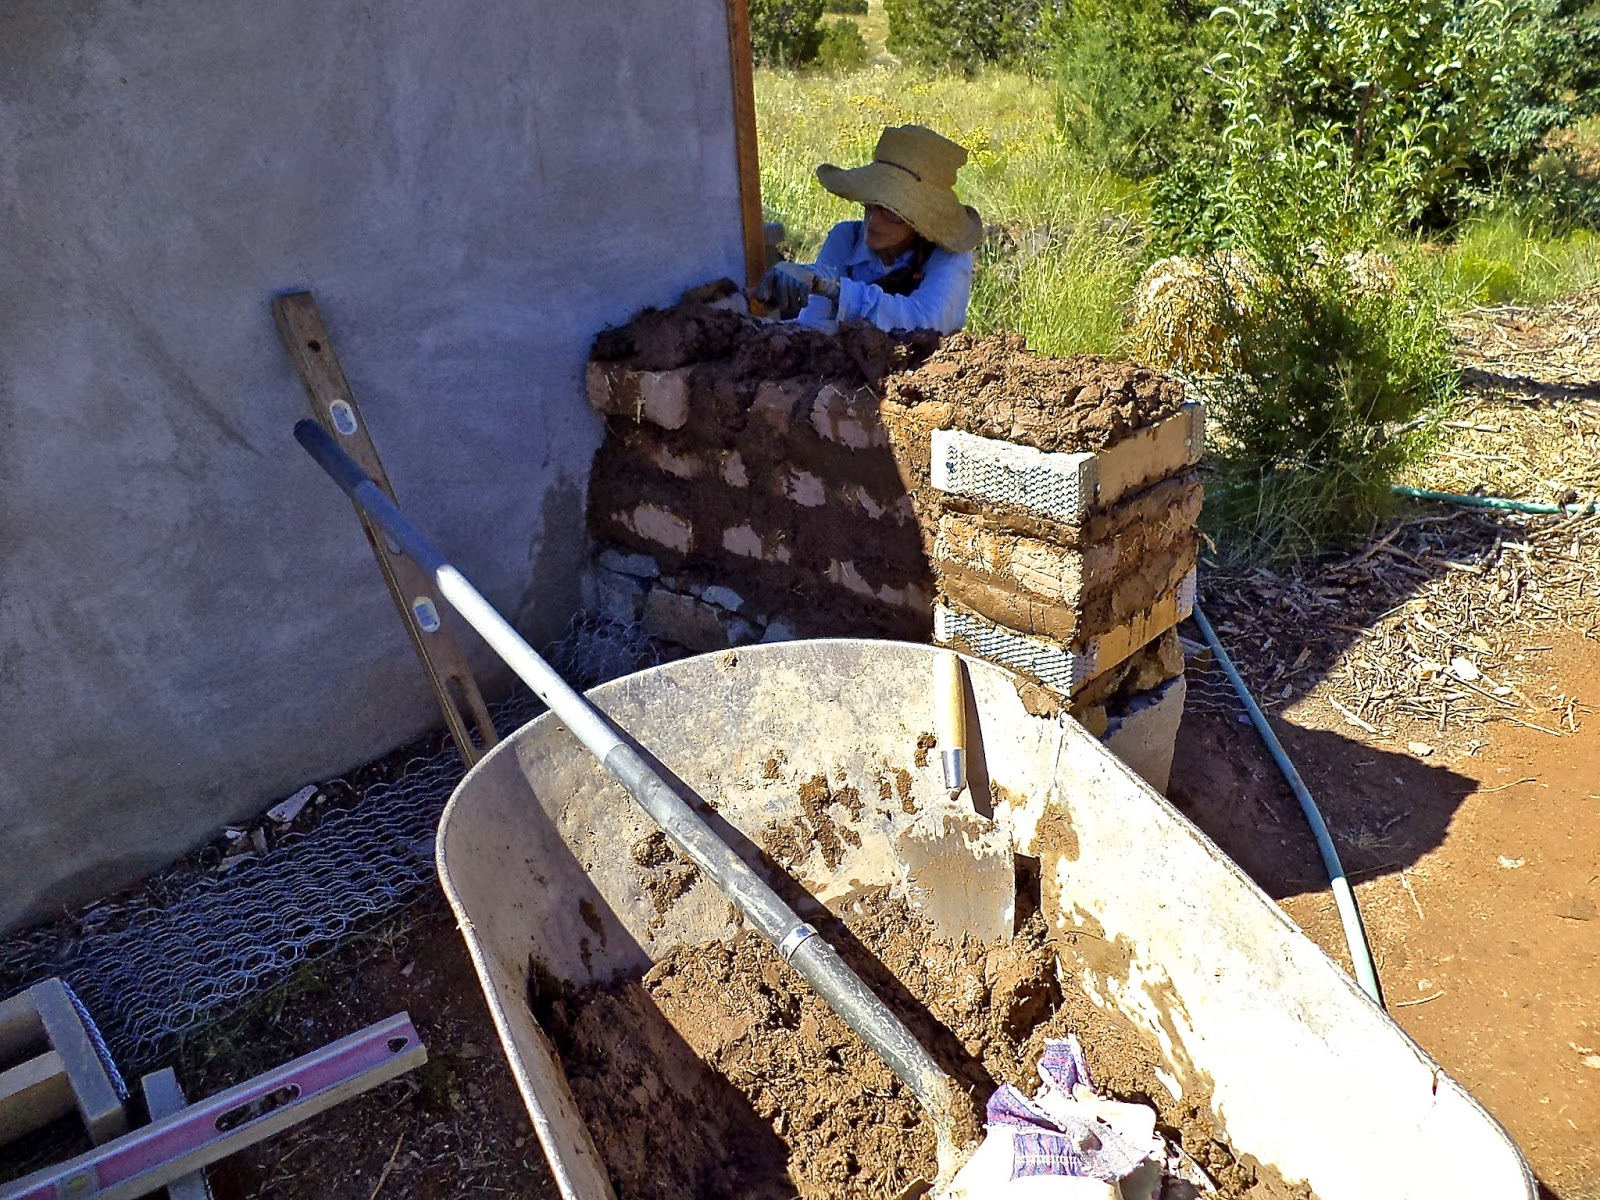 Alt build blog building an adobe wall 3 putting up adobes - How to build an adobe house ...